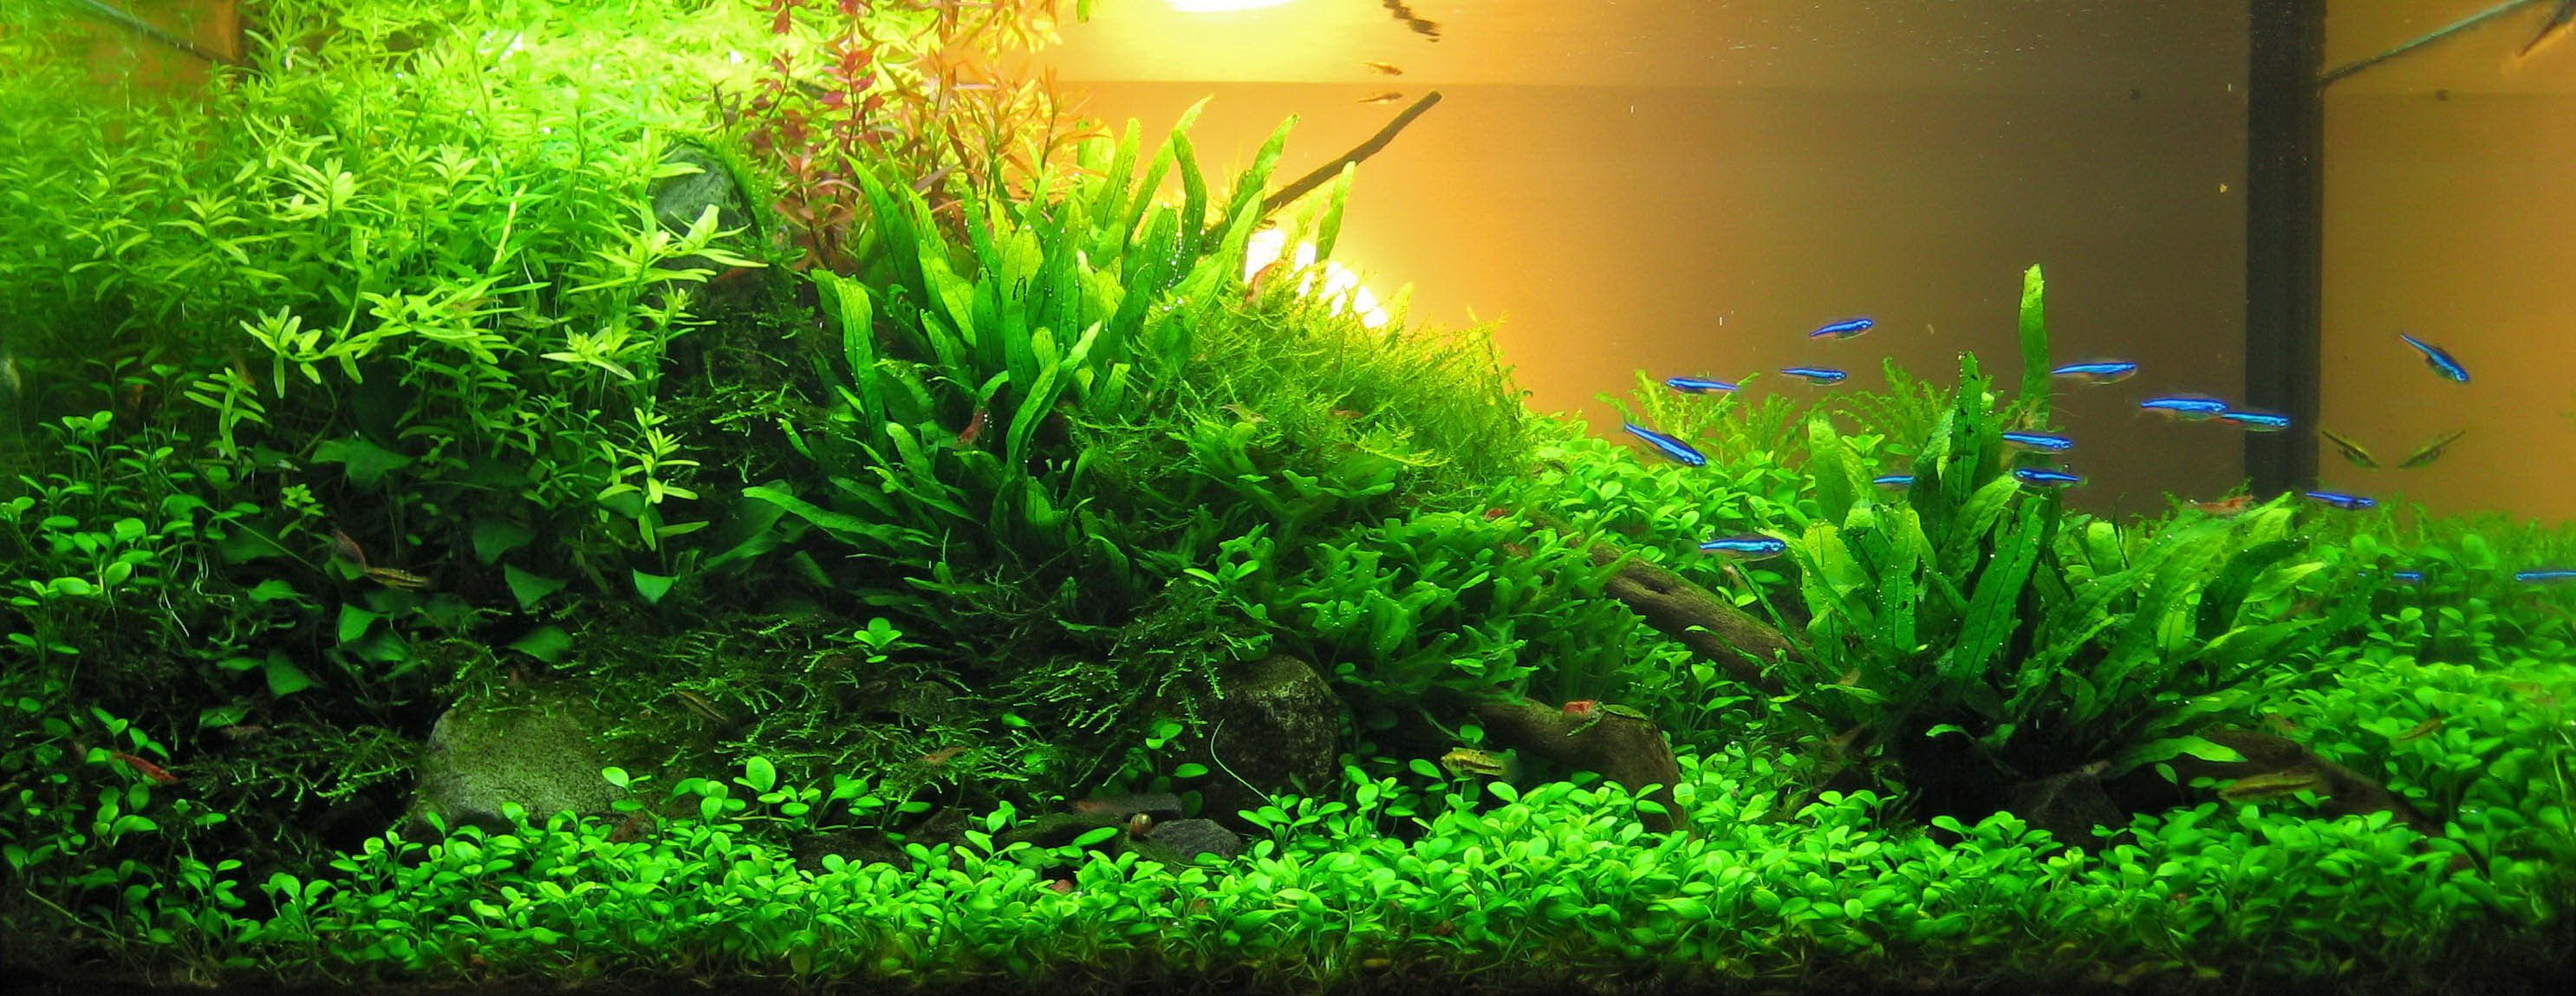 Wonderful aquascape aquarium designs simple aquarium designs aquascape hardscape aquarium - Design aquasacpe ...